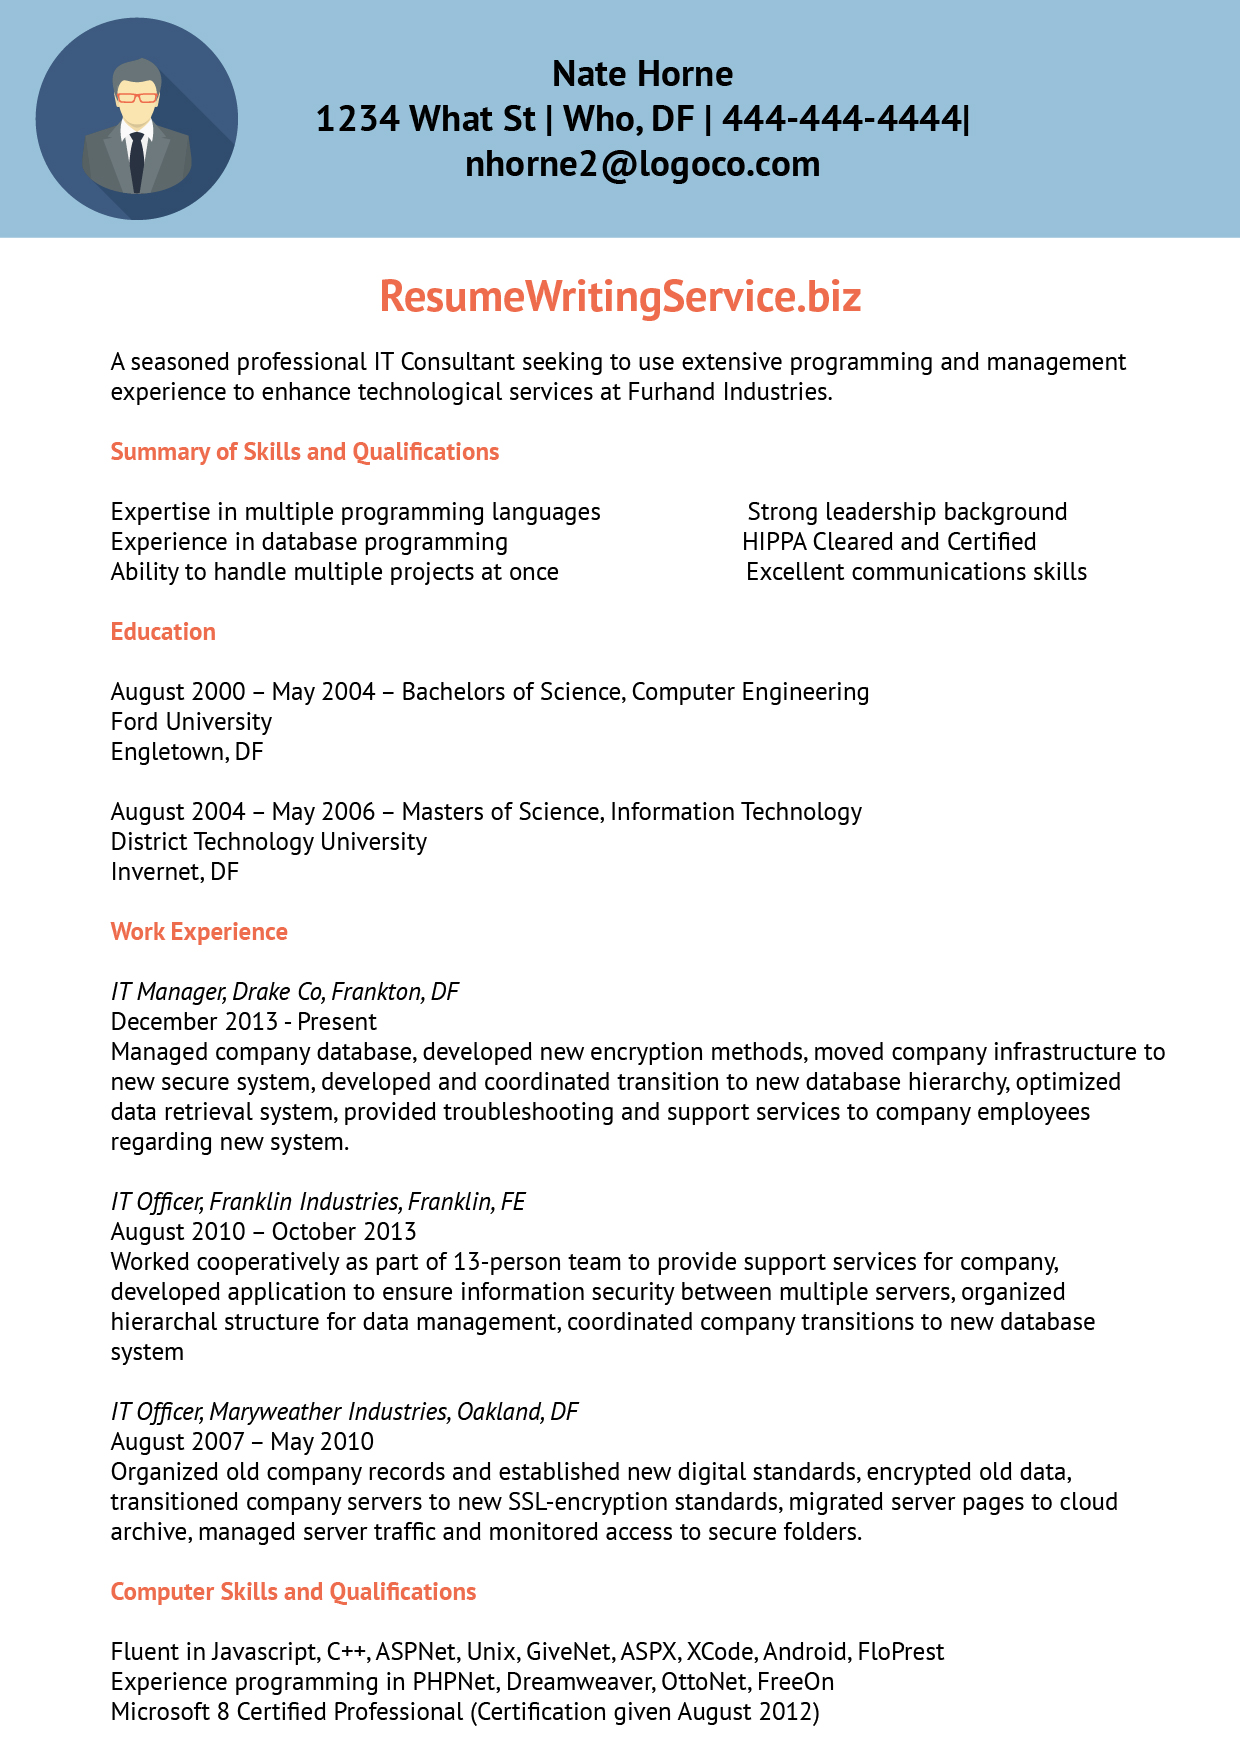 Information Technology Consultant Resume Sample | Resume Writing ...